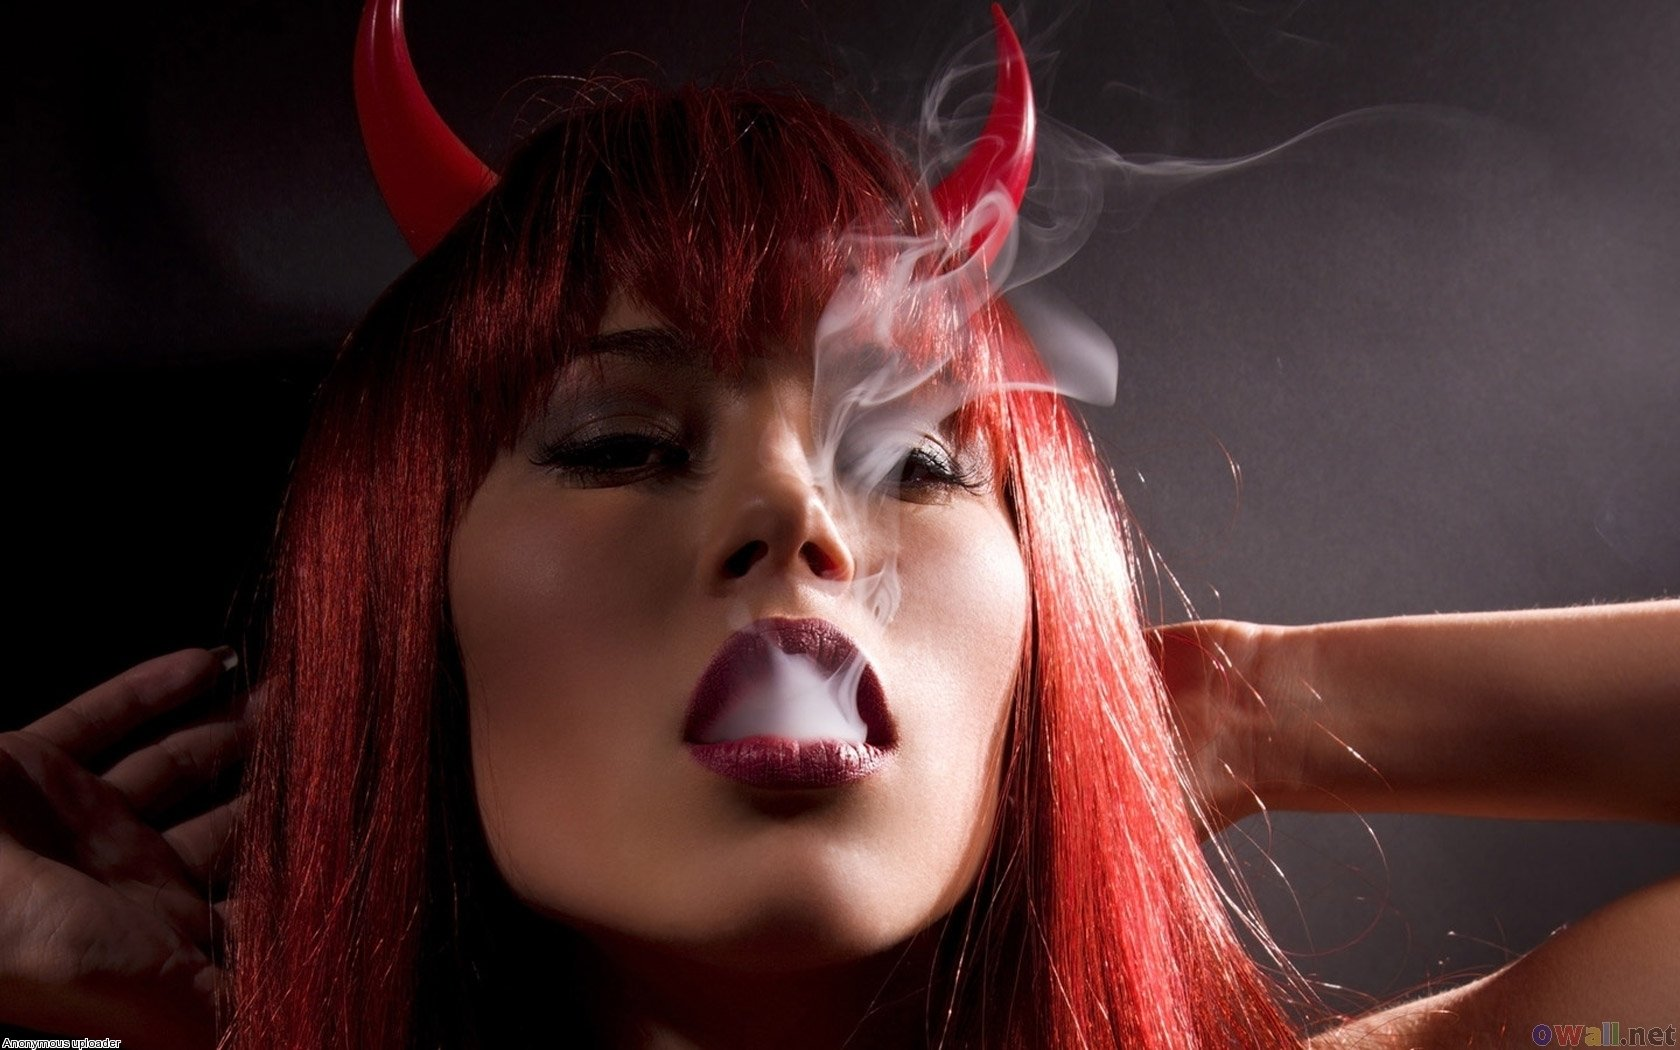 Women - Artistic  Smoke Lips Wallpaper